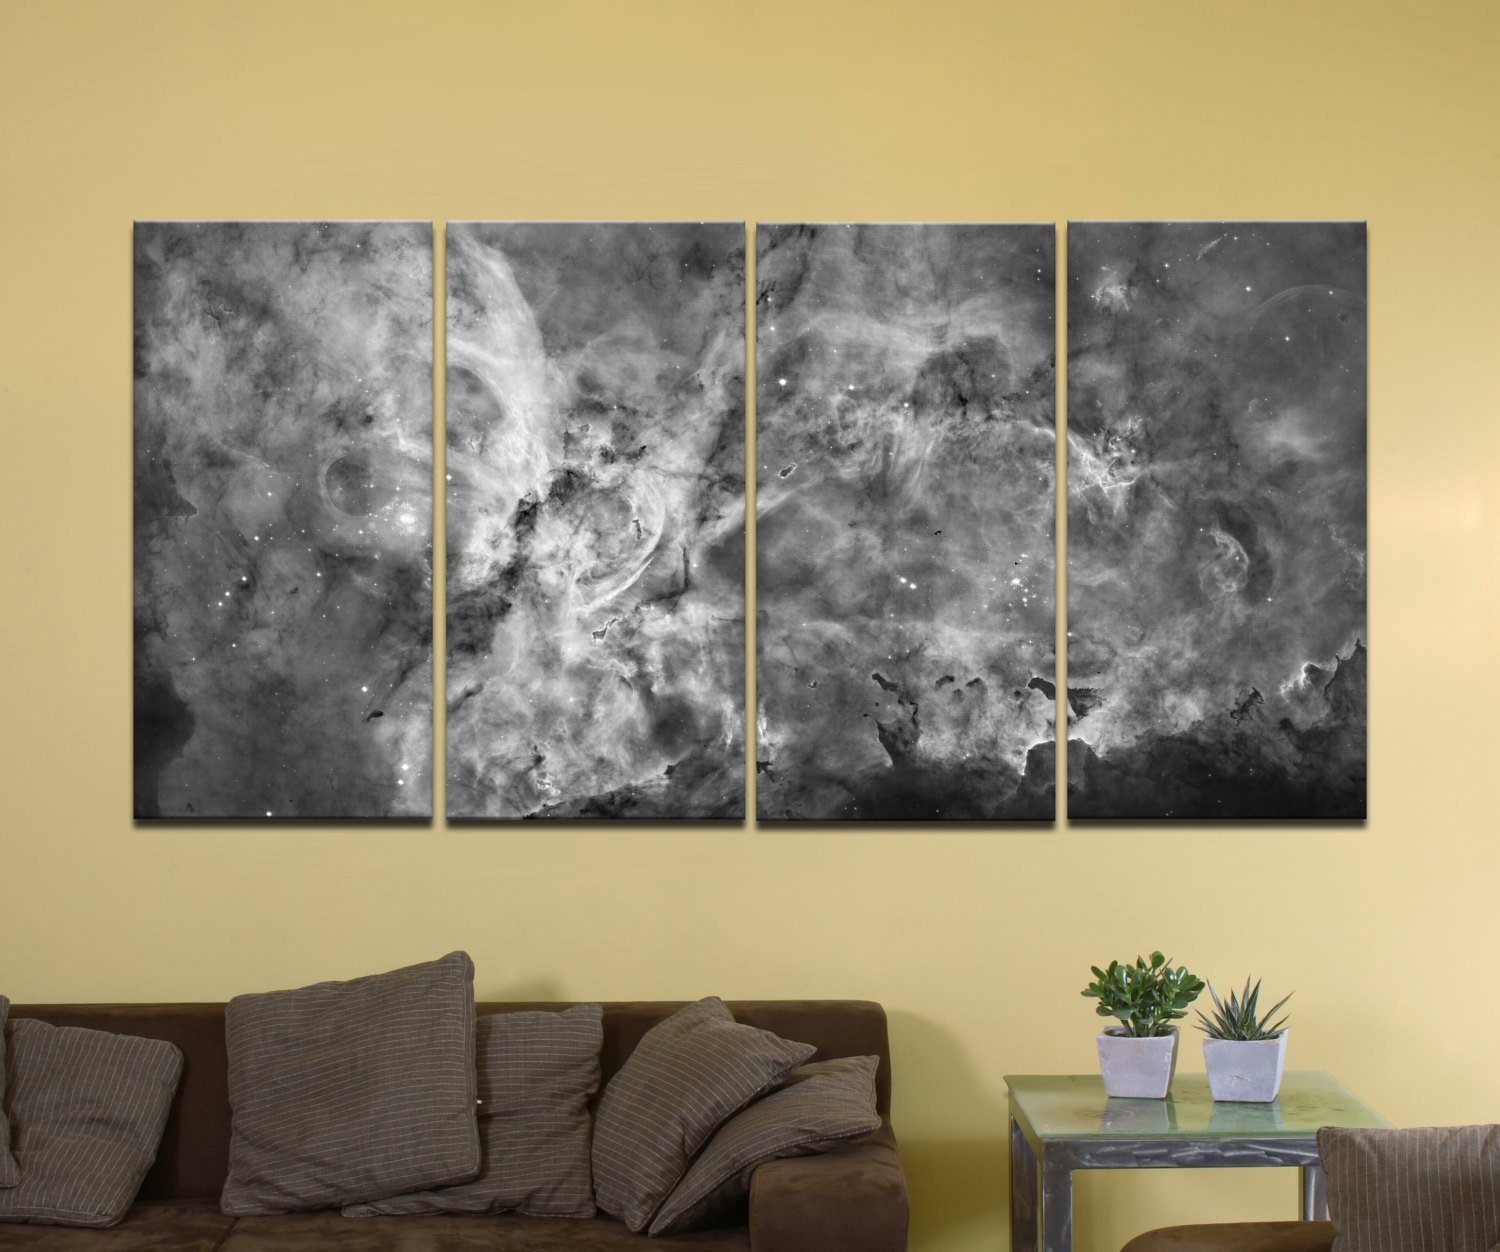 The Carina Nebula, Star Birth in the Extreme (Grayscale) – 72″ x 36″, 4-Piece Split Canvas Wall Mural